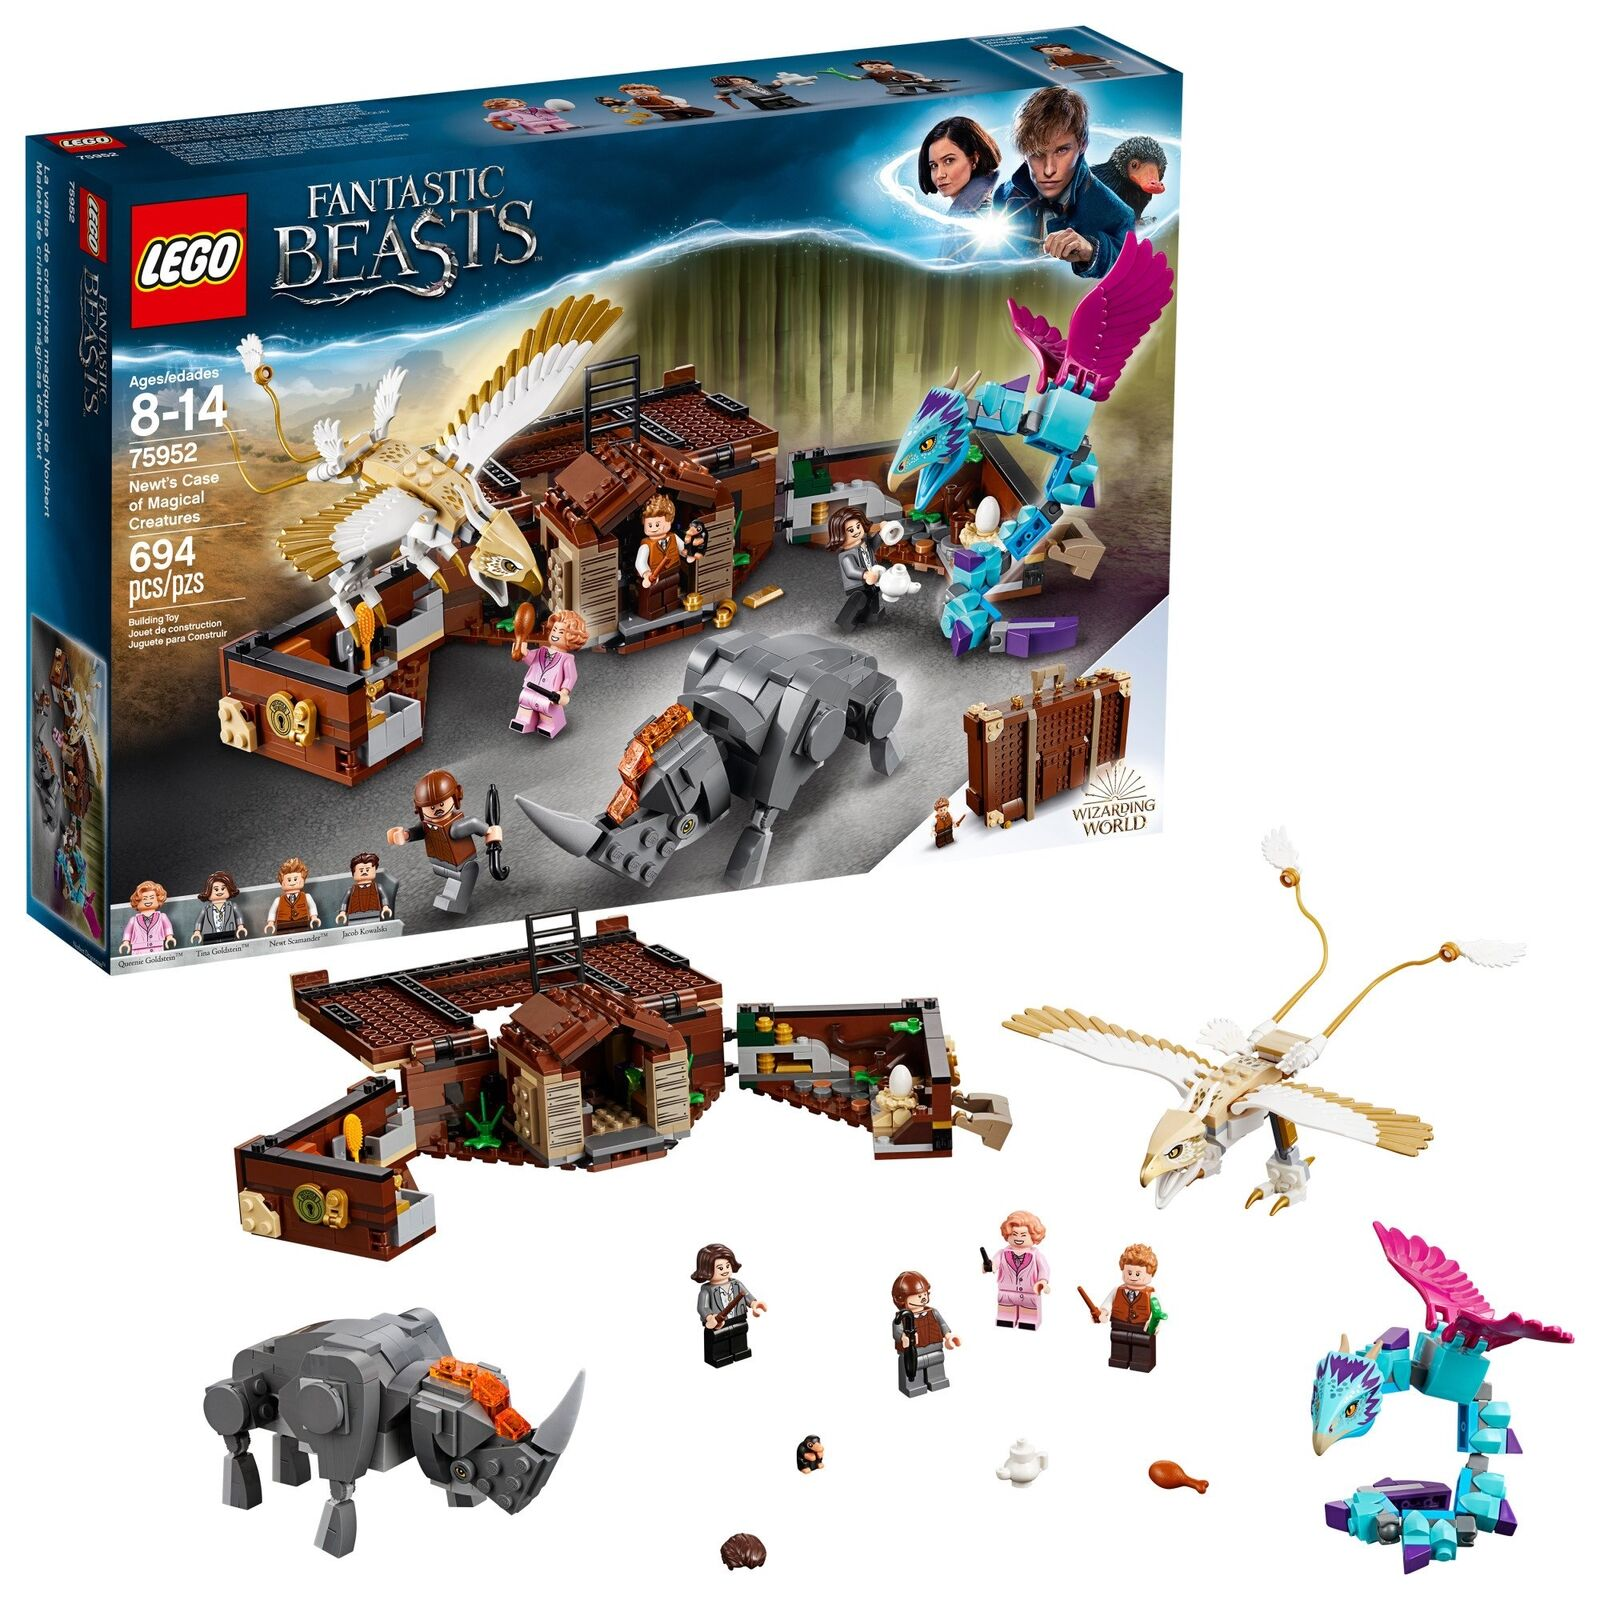 LEGO Harry Potter Nuovots Case of Magical Creatures Building Kit  694 Piece ,